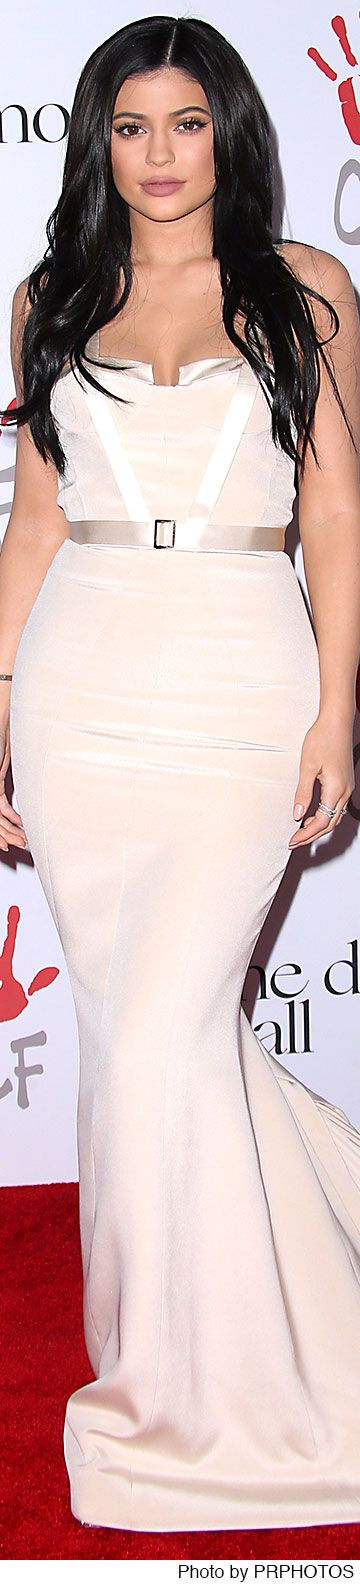 Kylie Jenner wearing August Getty Dress – 2015 Diamond Ball